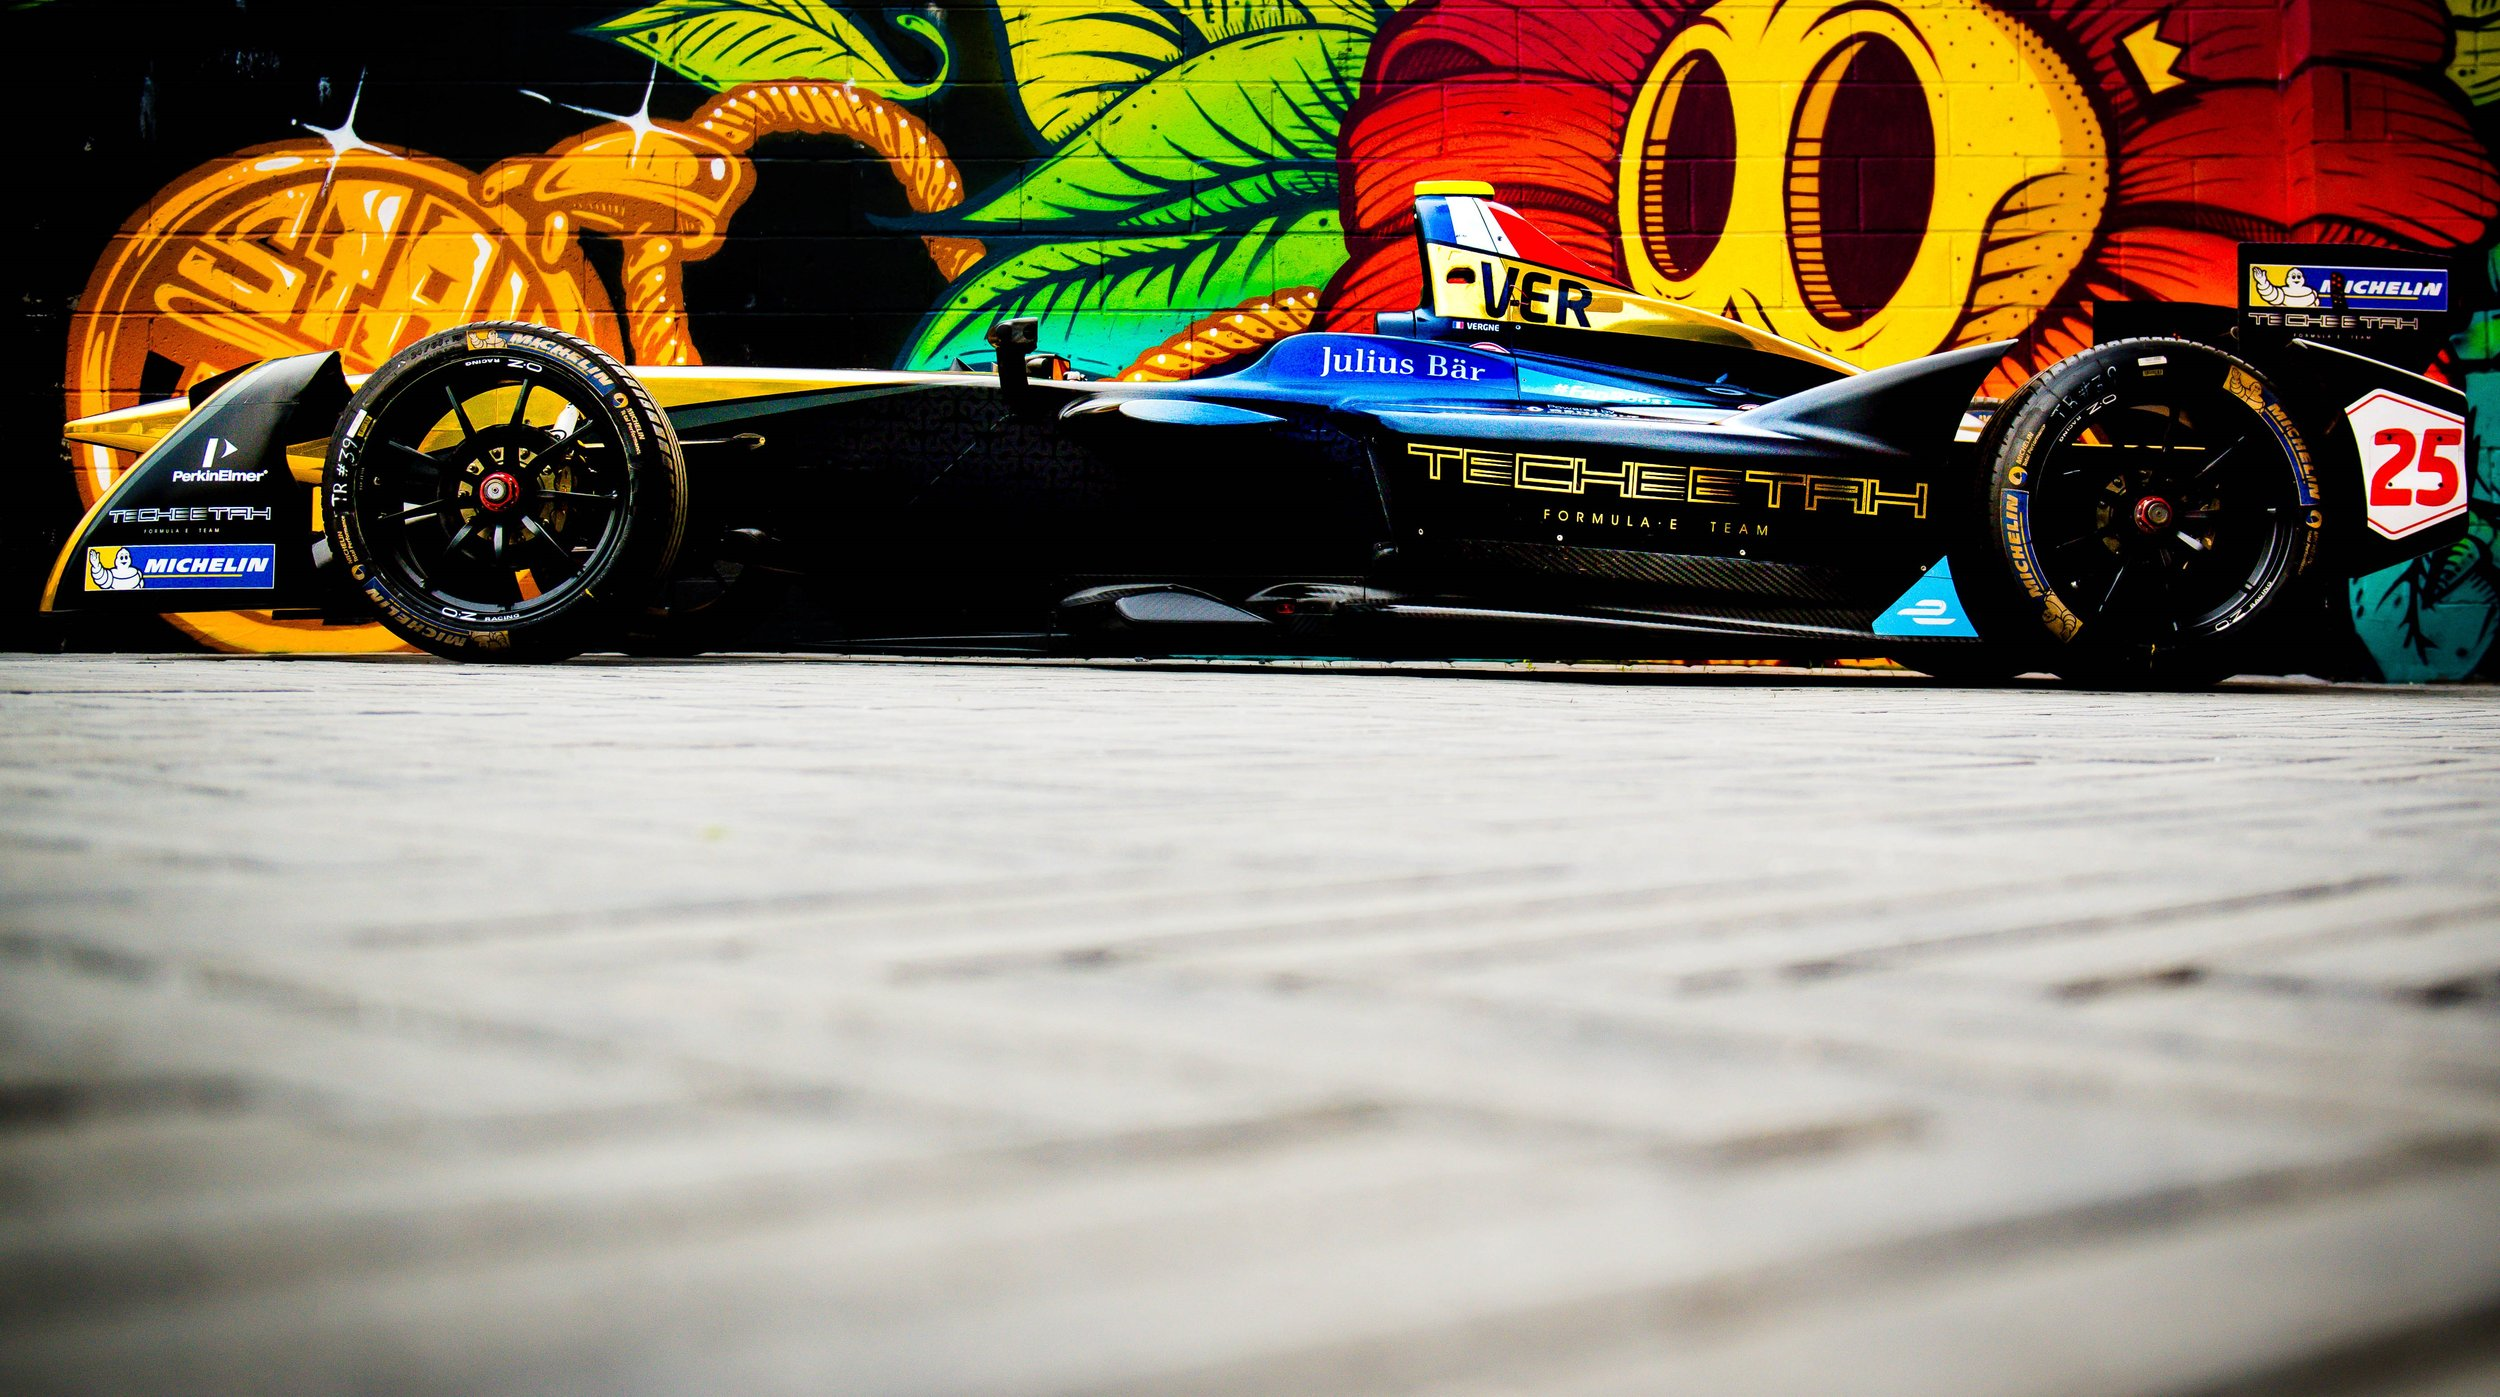 | Team: Techeetah| Car: Renault Z.E 16|| Photographer: Lou Johnson| Event: New York ePrix| Circuit: Brooklyn Circuit| Location: Brooklyn, NY| Series: FIA Formula E| Season: 2016-2017| Country: US|